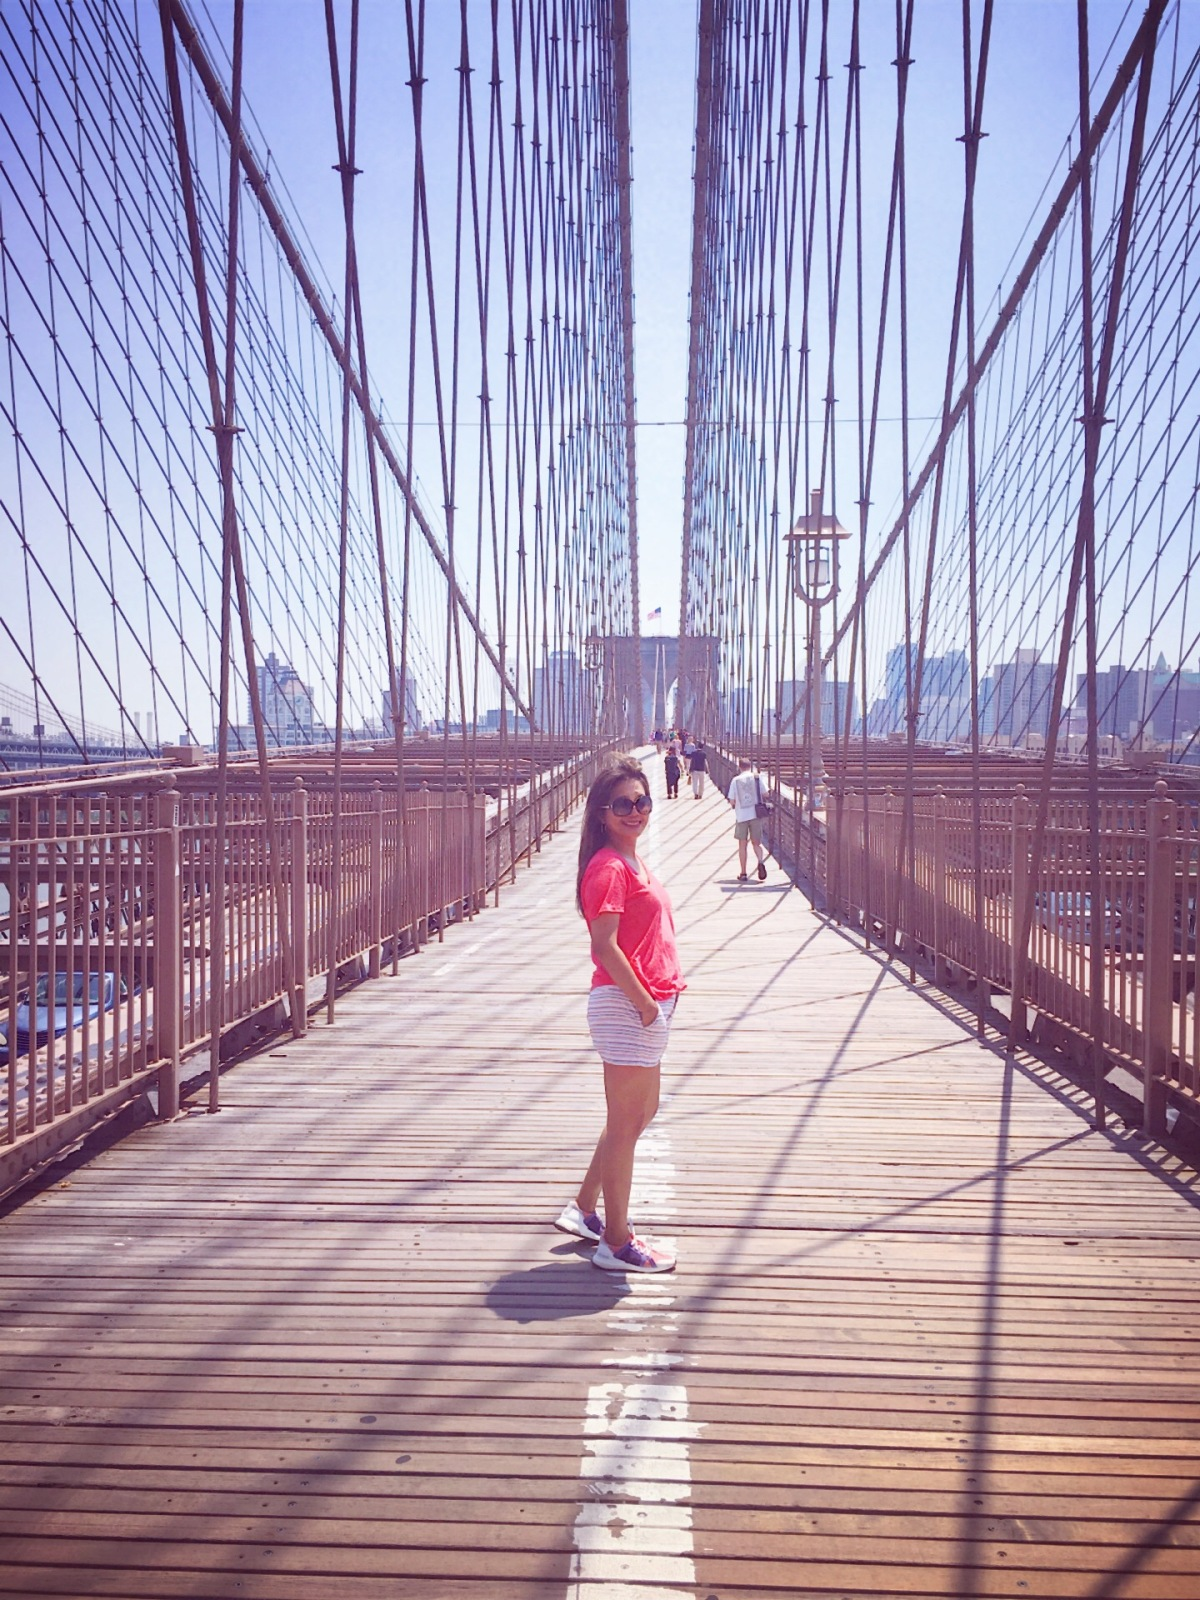 A Reflection on life while crossing the Brooklyn Bridge